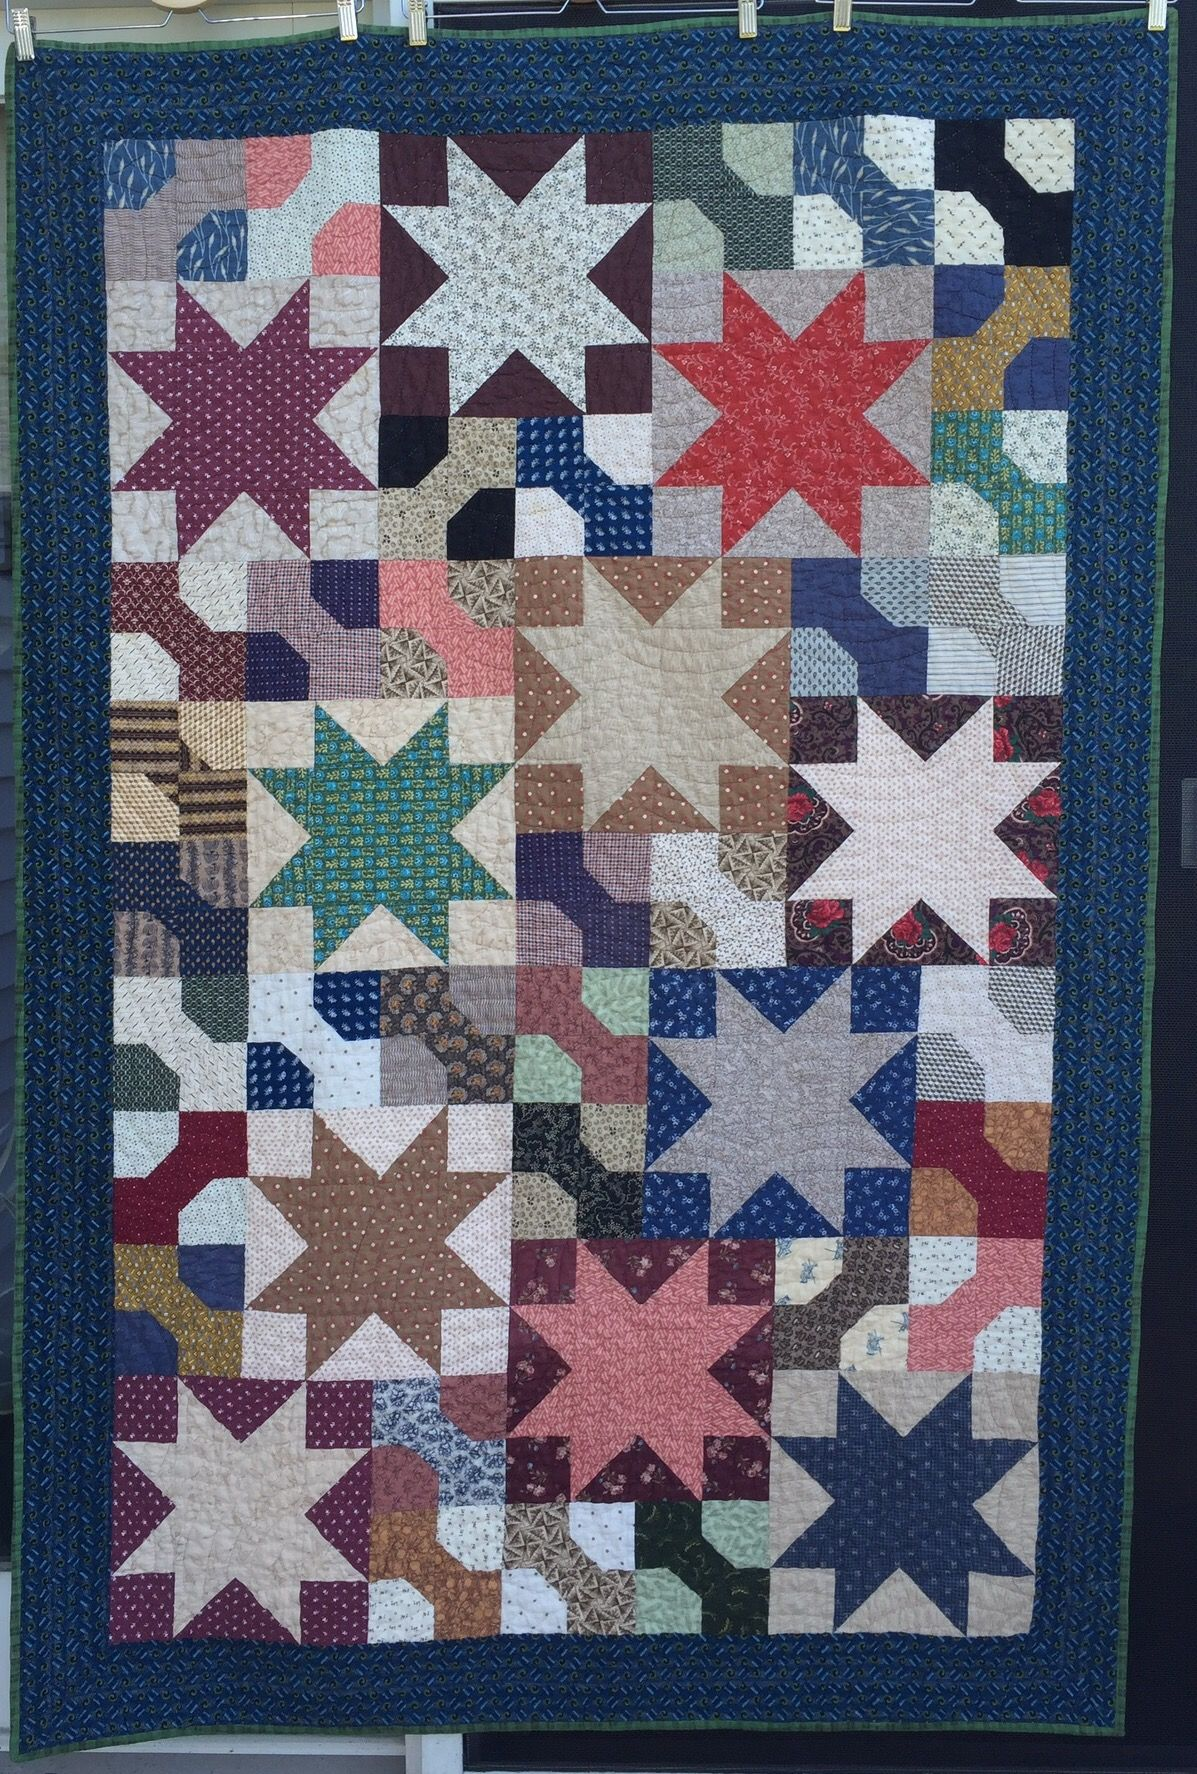 Katy says I have always loved quilts quilted with the Baptist fan